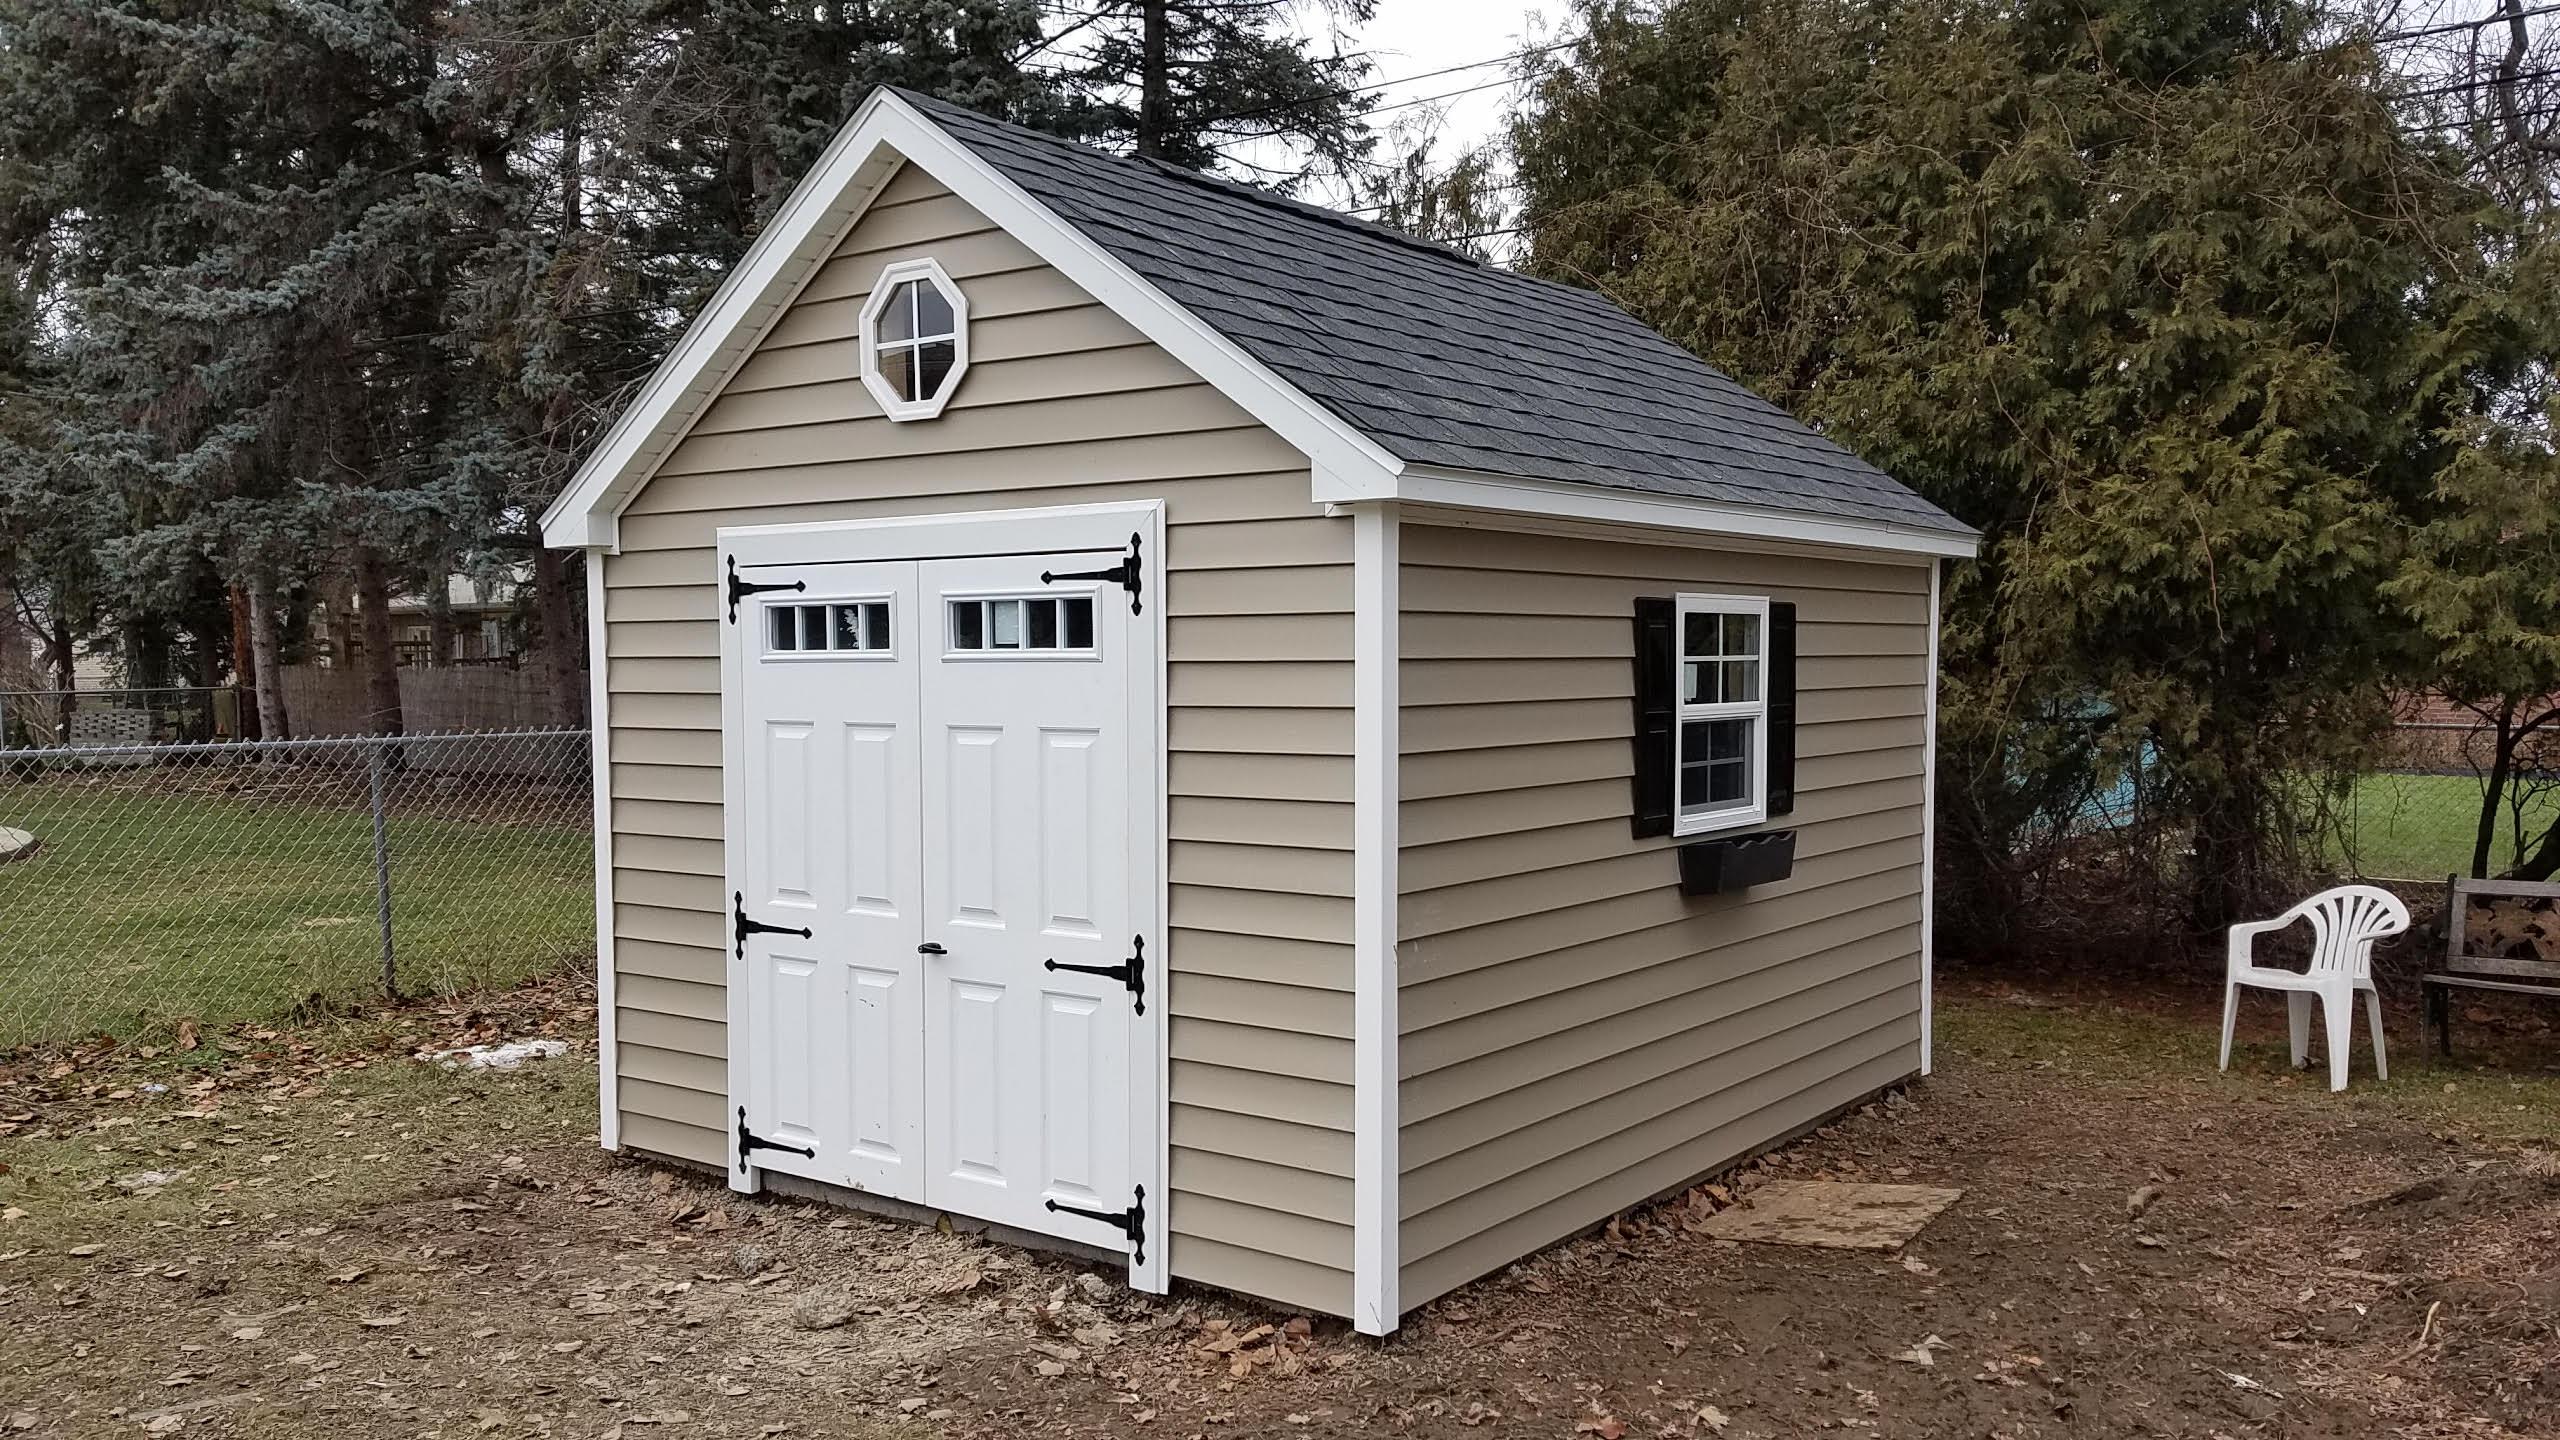 Gable Style Sheds By Star Construction